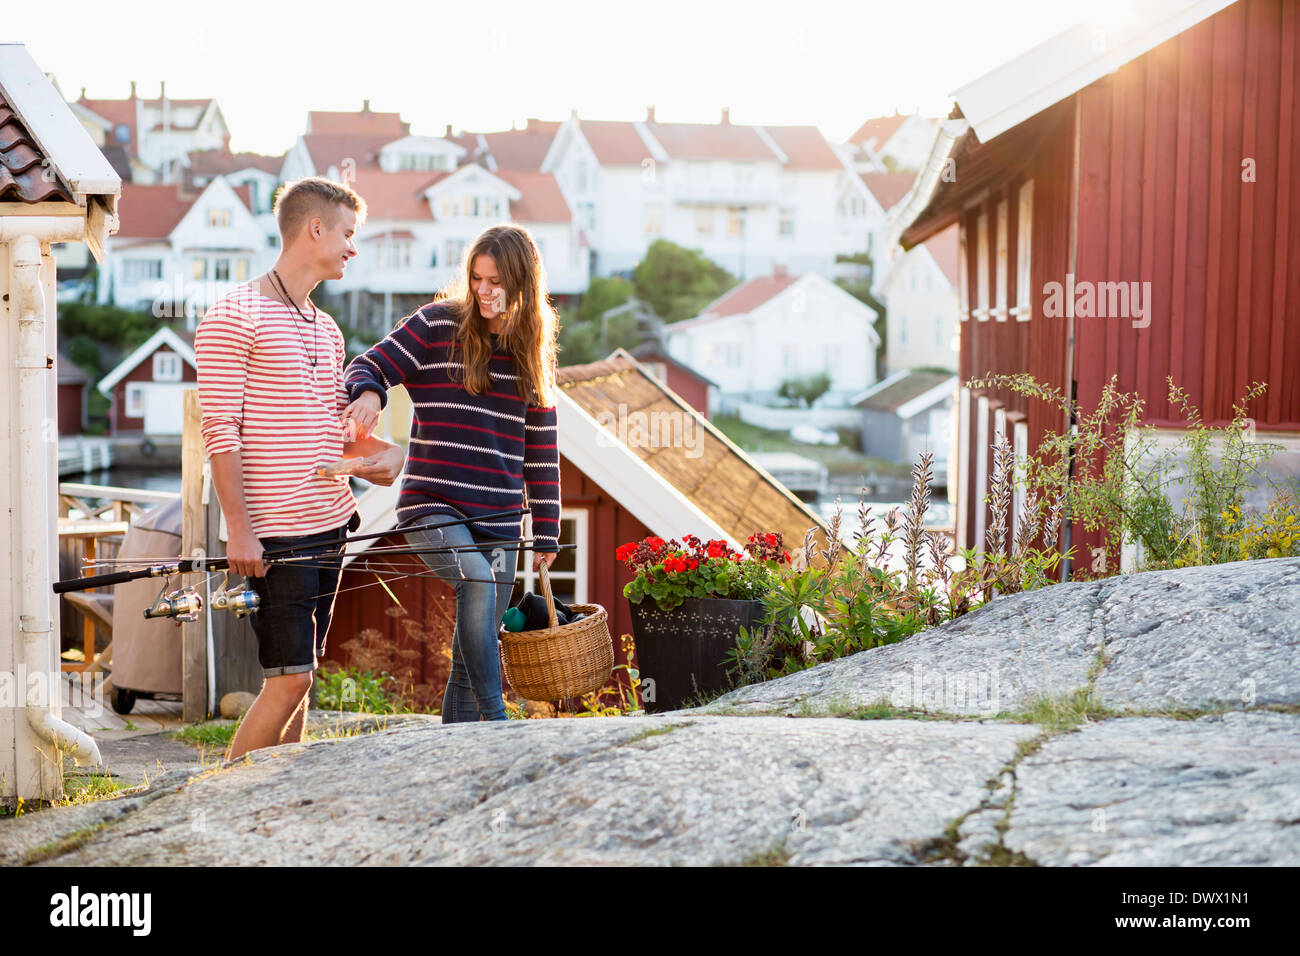 Young couple with basket and fishing rods walking outdoors - Stock Image